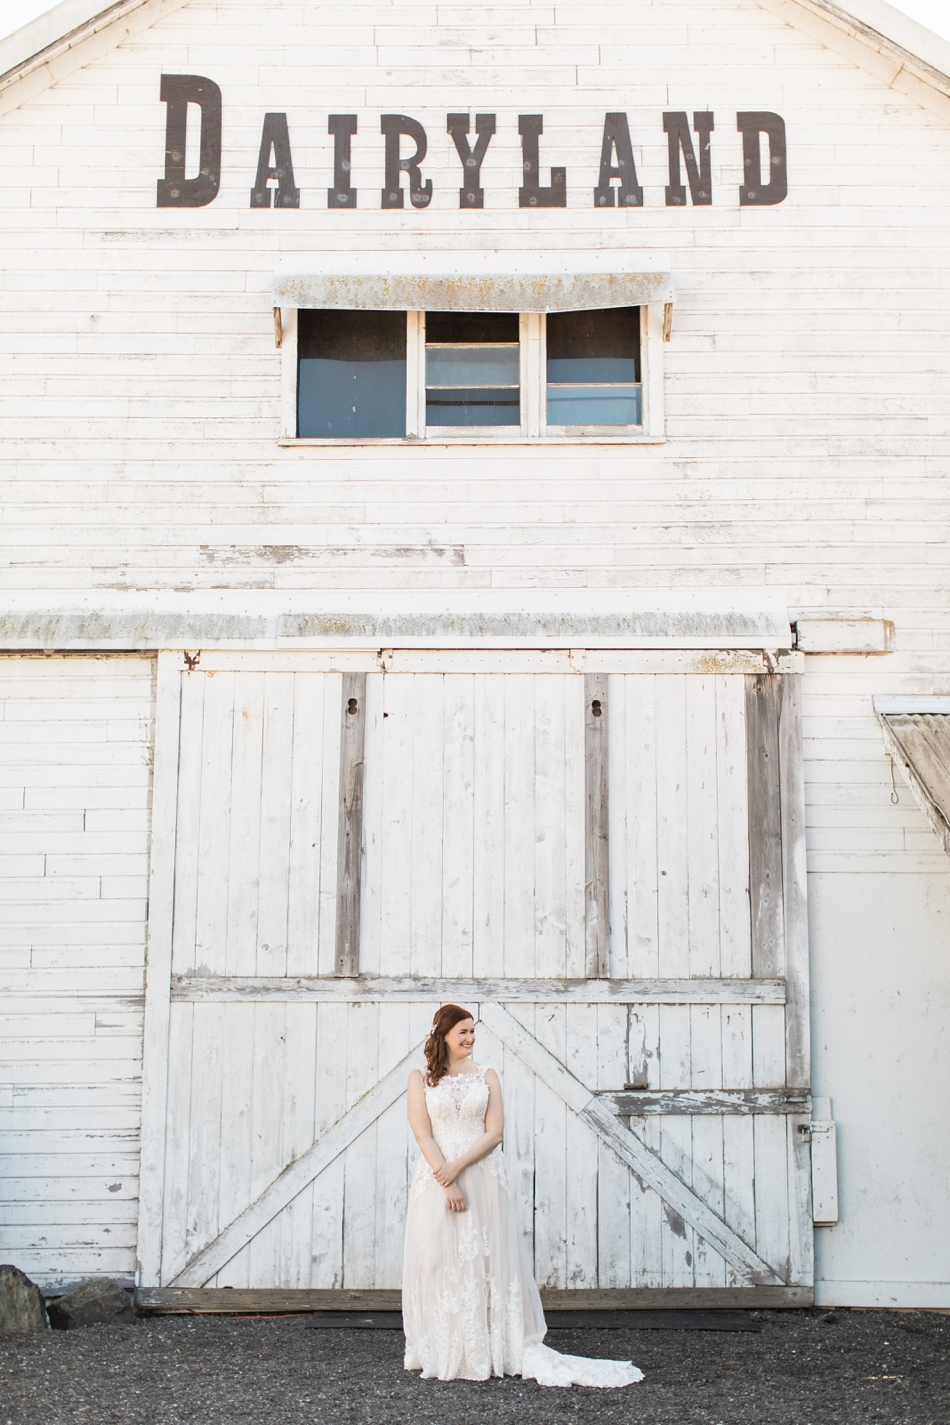 Bride Kate in her wedding dress, standing in front of a white-washed barn at Dairyland wedding venue in Snohomish, WA. | Joanna Monger Photography